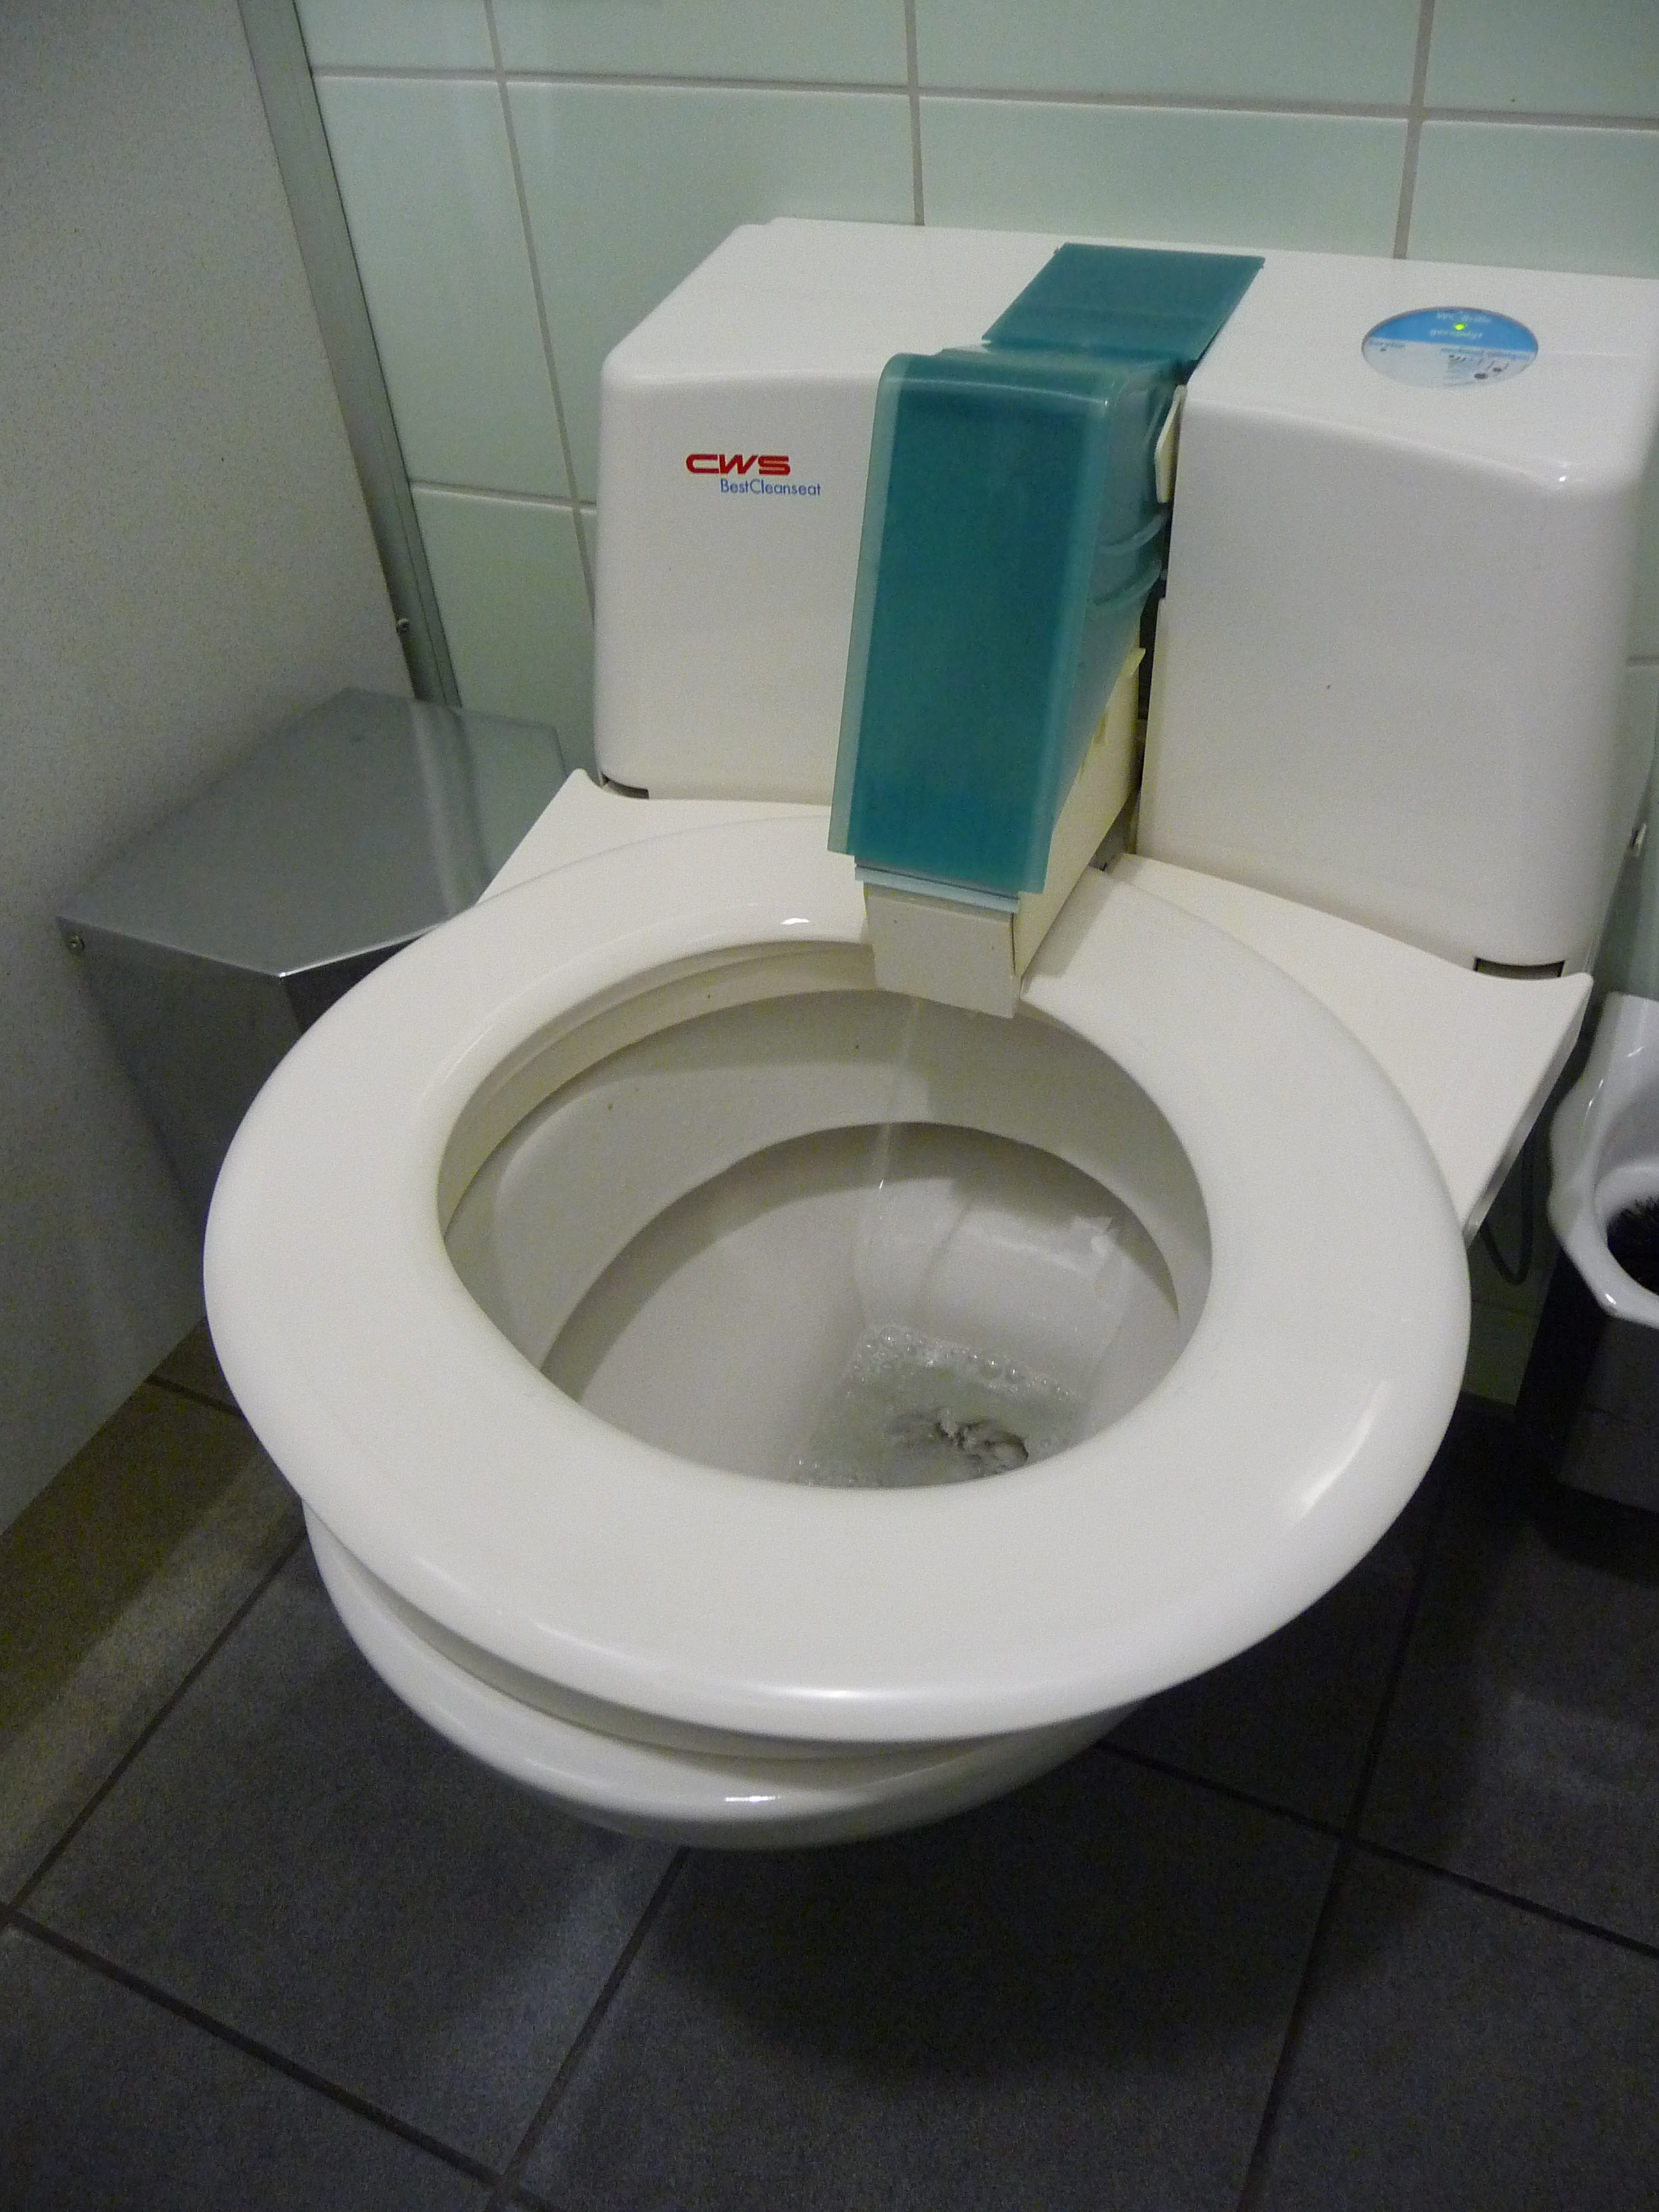 Automatic Toilets For Homes : Automatic self clean toilet seat wikiwand